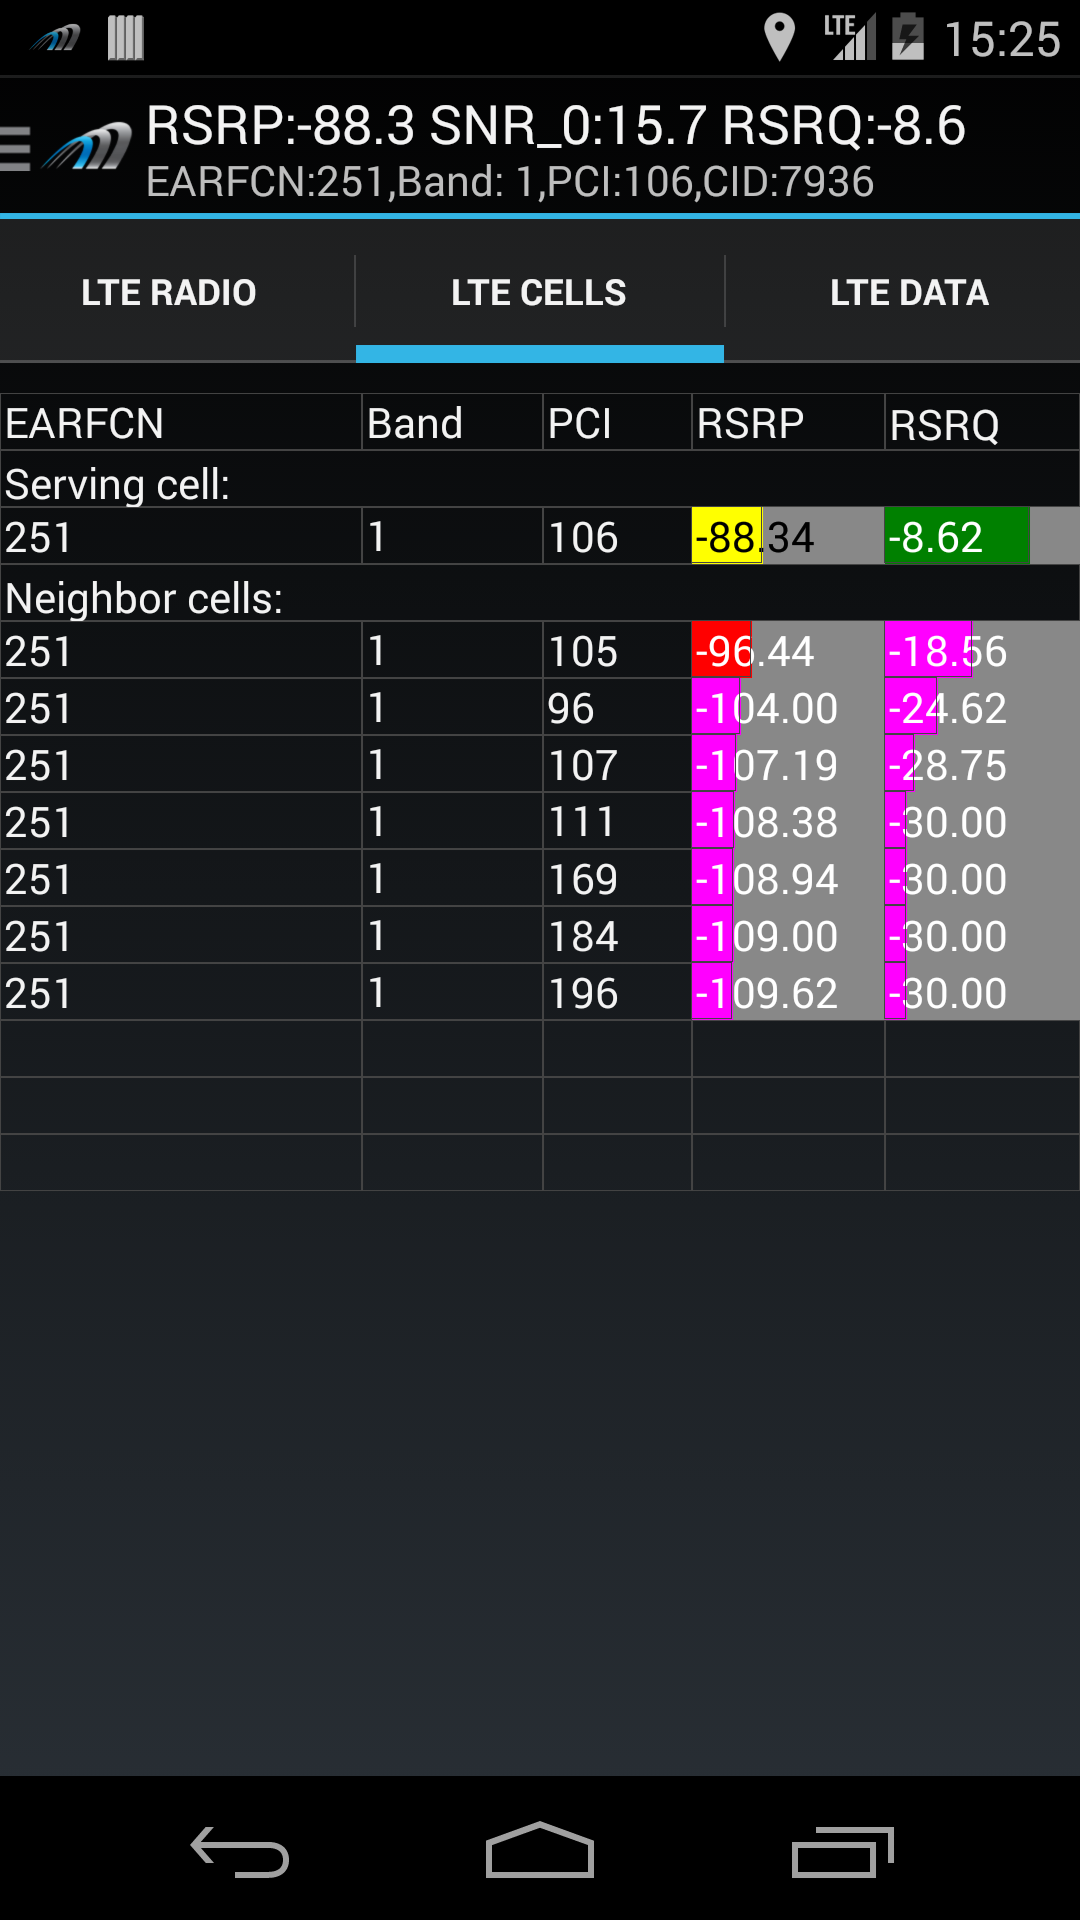 AZQ on Nexus 5 LTE Neighbor Cells